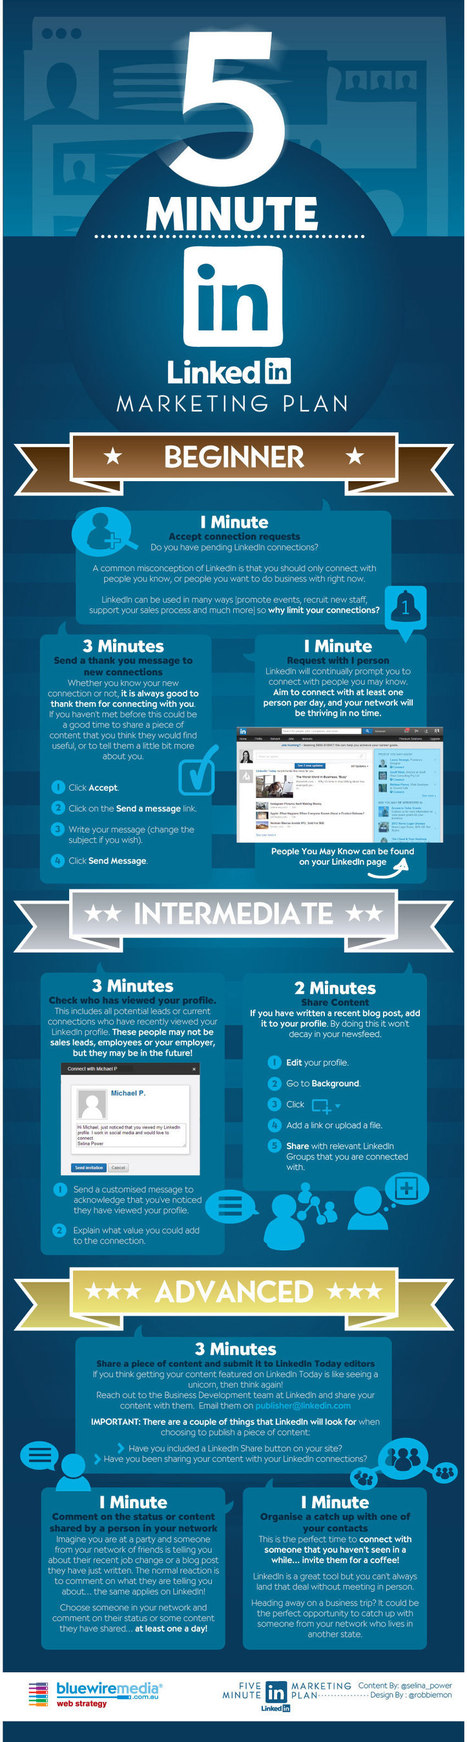 LinkedIn Marketing Strategy Infographic - Bluewire Media | Twitter is a party...Social Media fun | Scoop.it